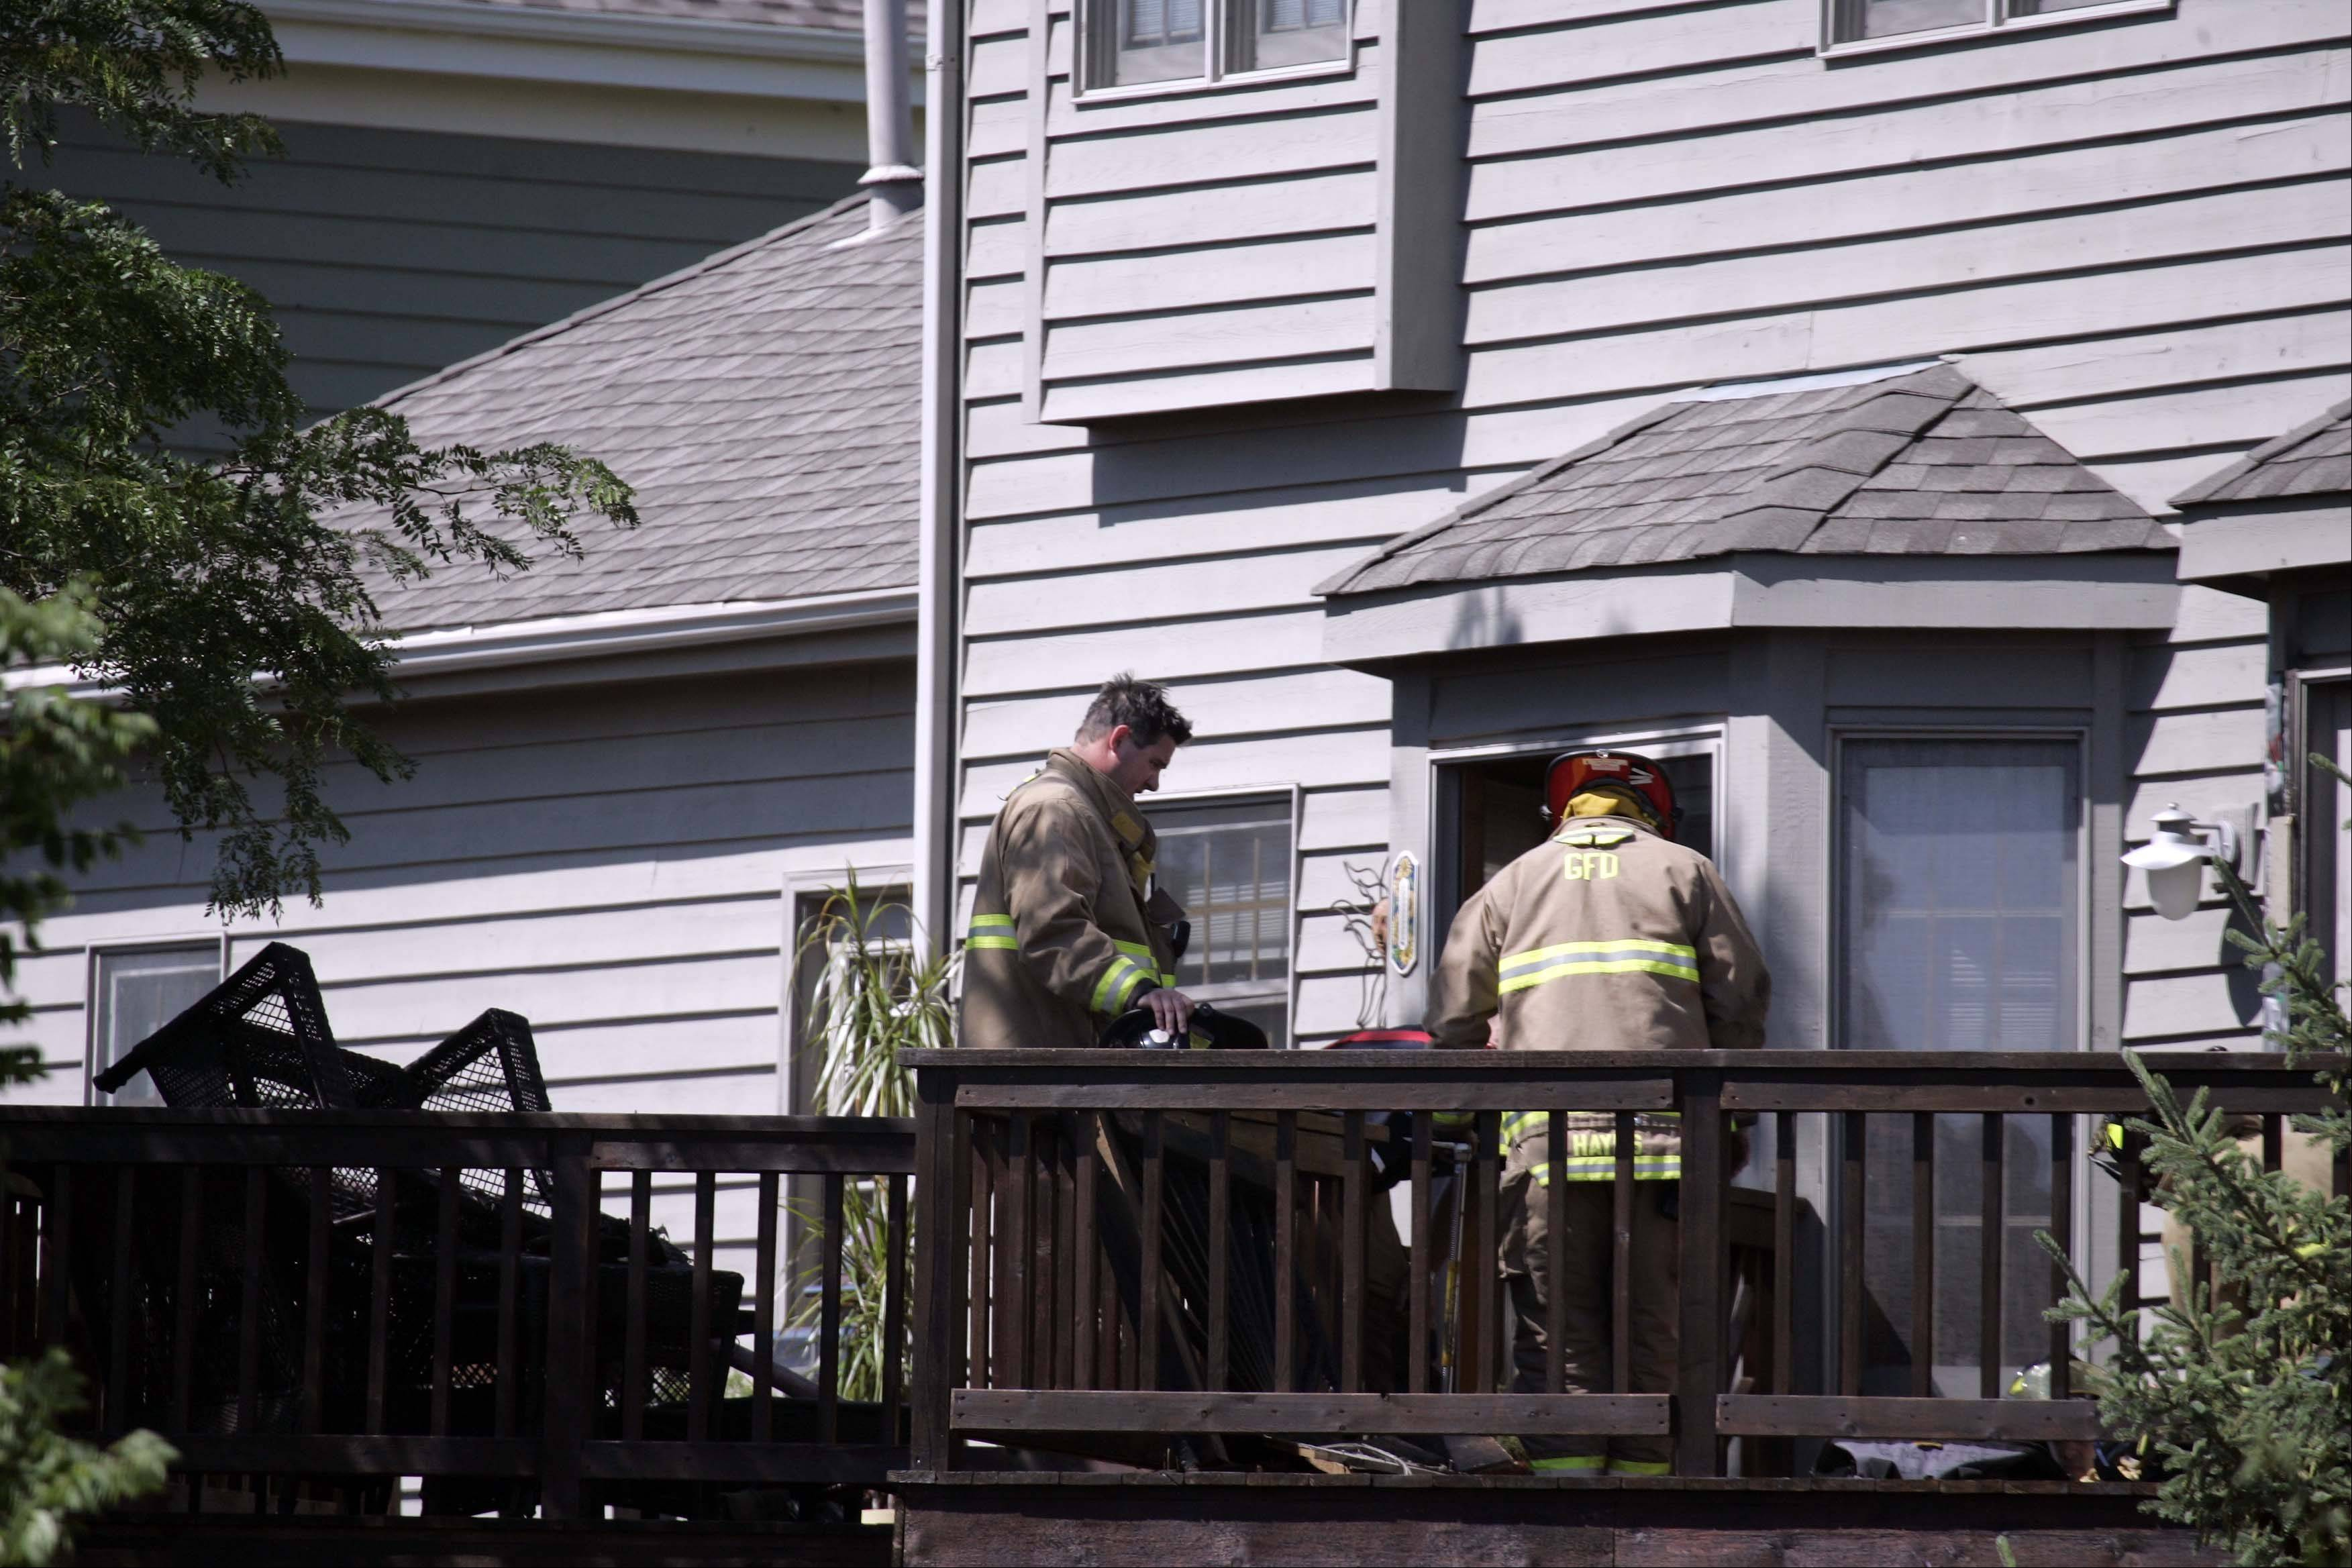 Geneva, Elburn, St. Charles and Batavia firefighters responded to a deck fire in the 200 block of Westhaven Circle in Geneva Wednesday. It was caused by discarded smoking materials, according to fire department officials.